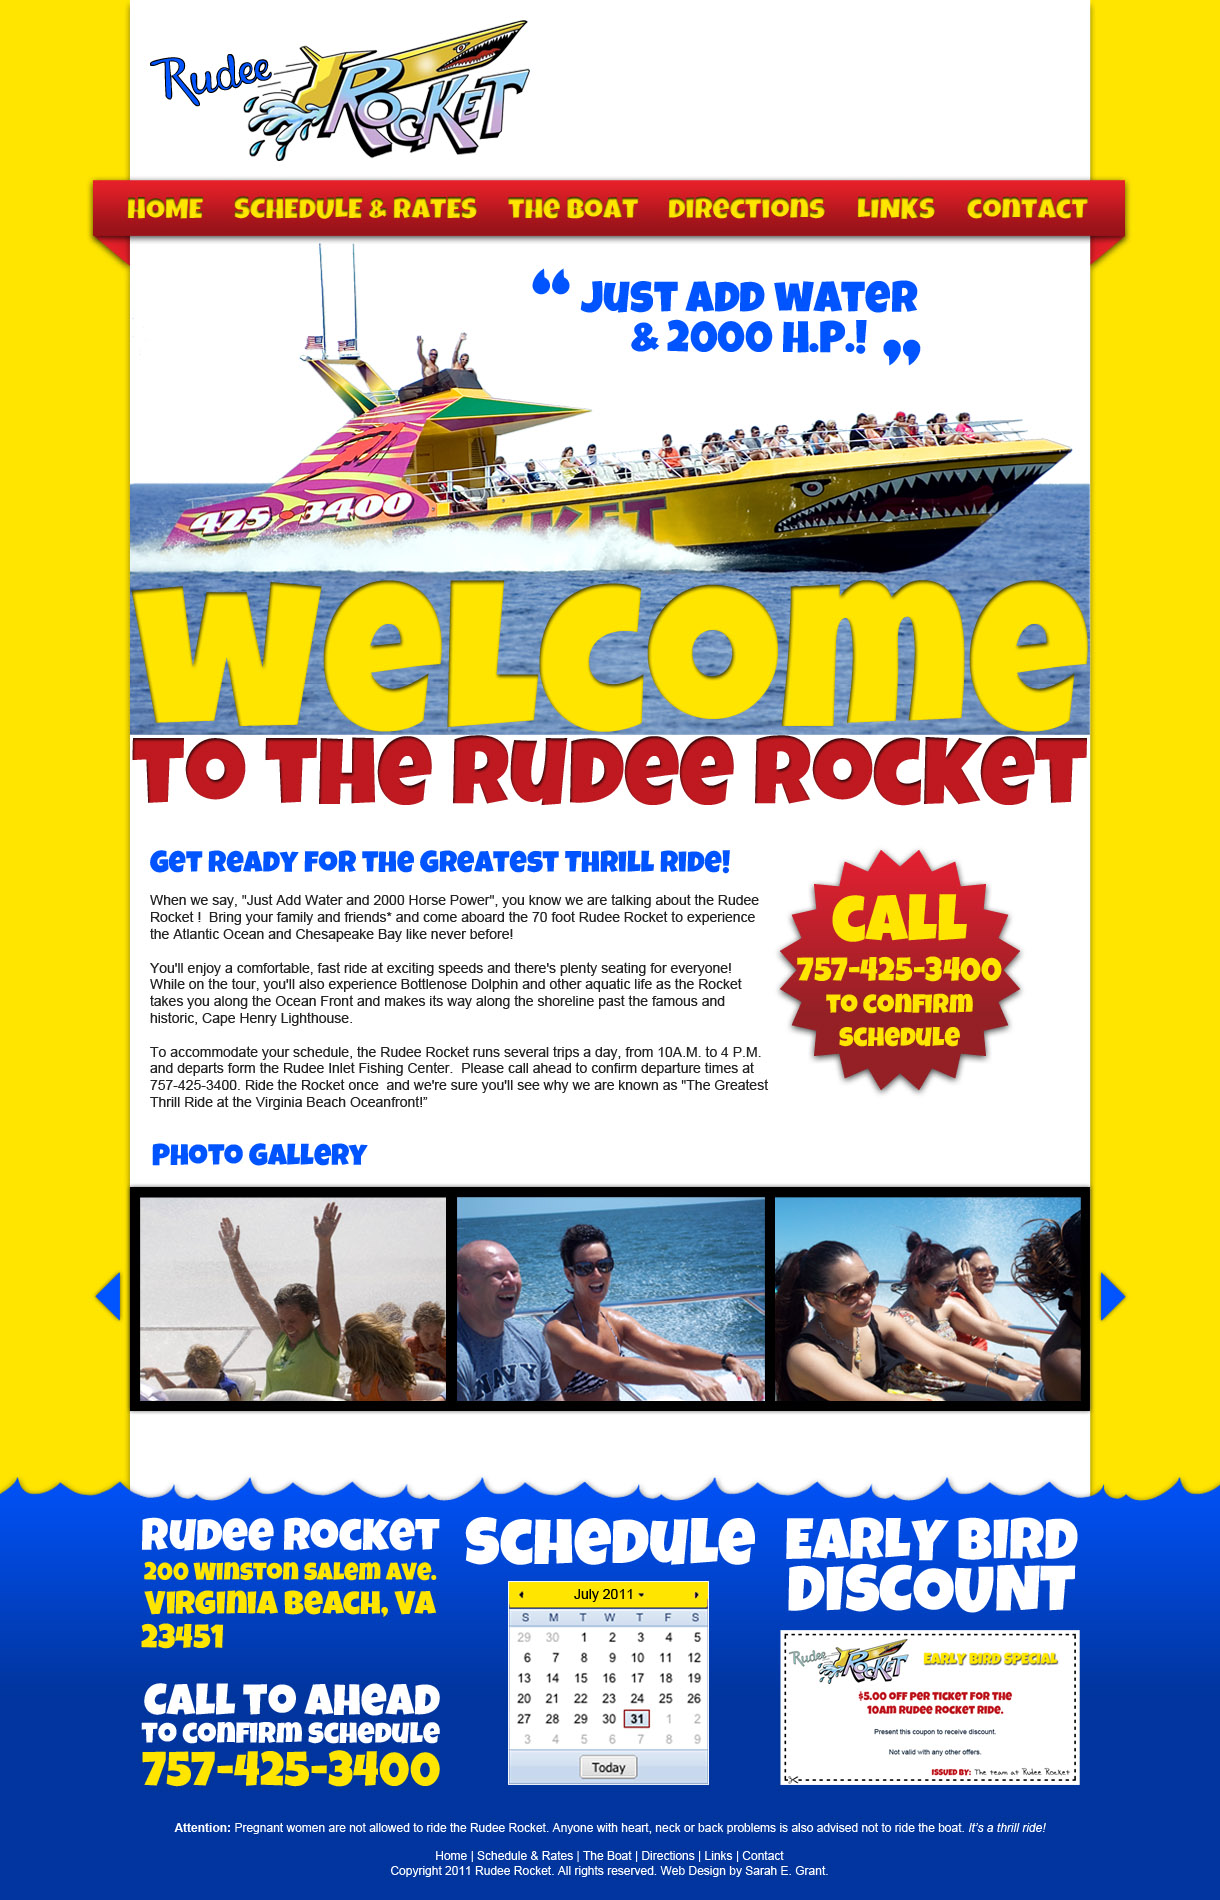 rudee-rocket-home-2.jpg